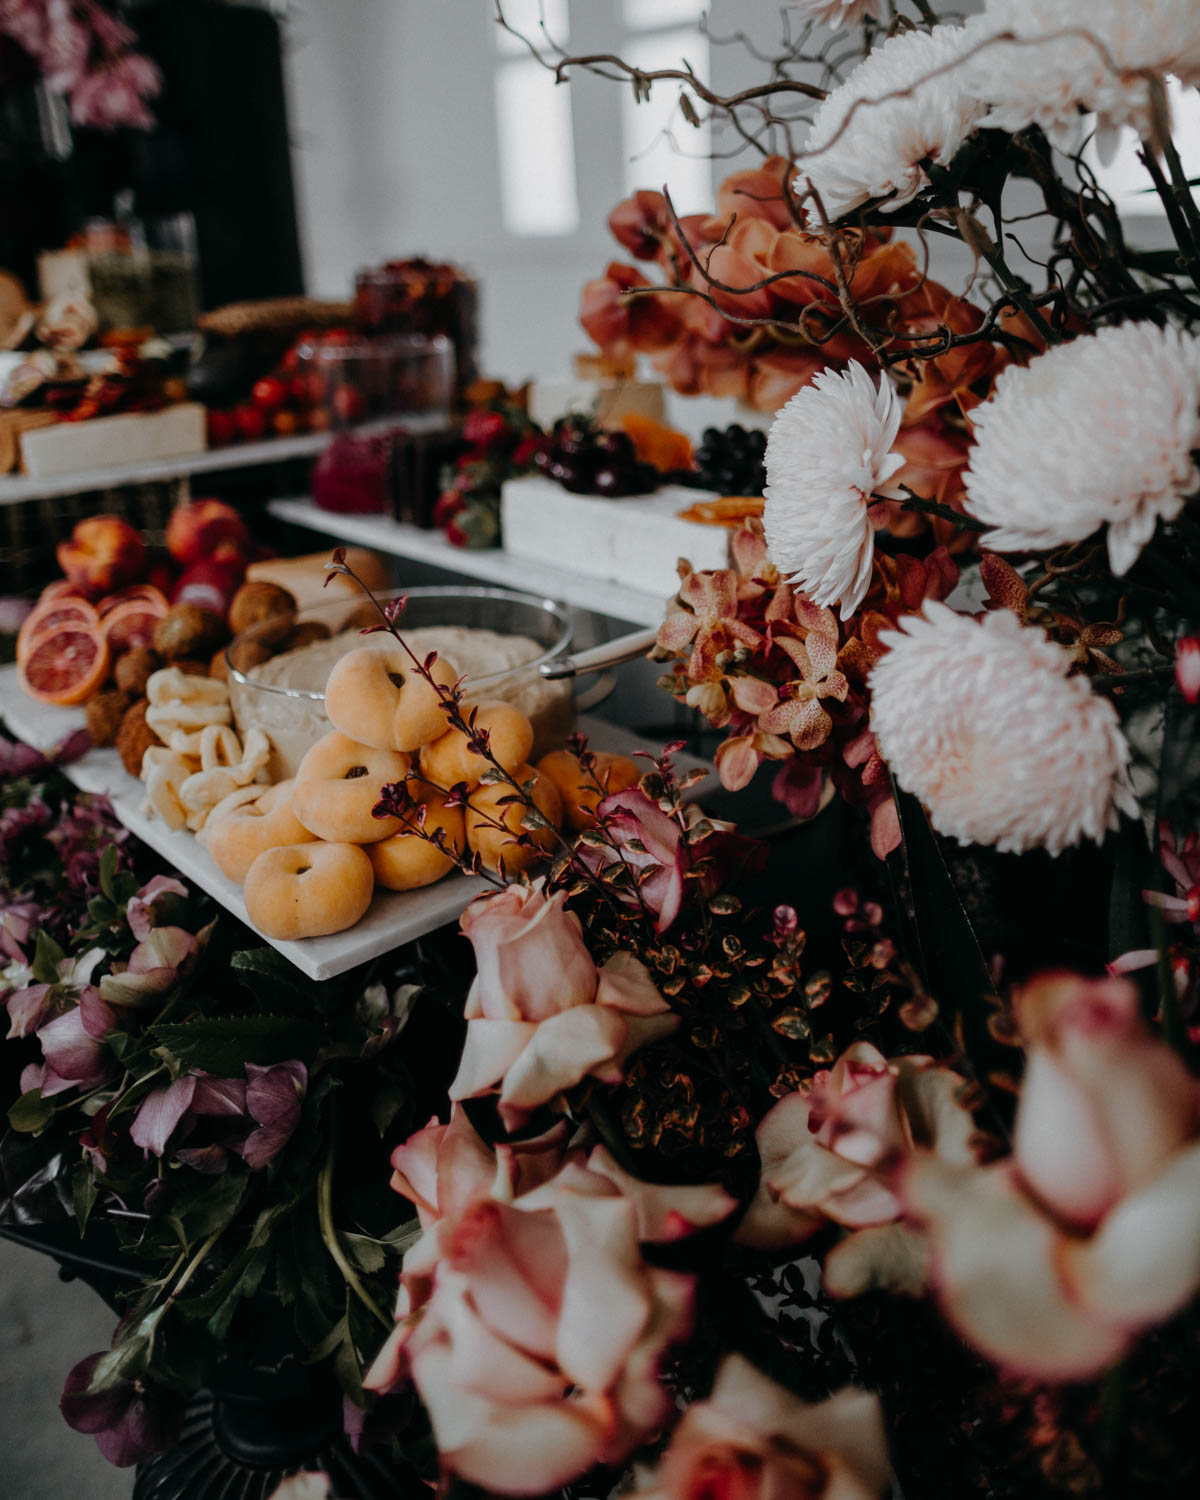 jule mouawad photography melbourne wedding catering grazing tables eco-conscious wedding food